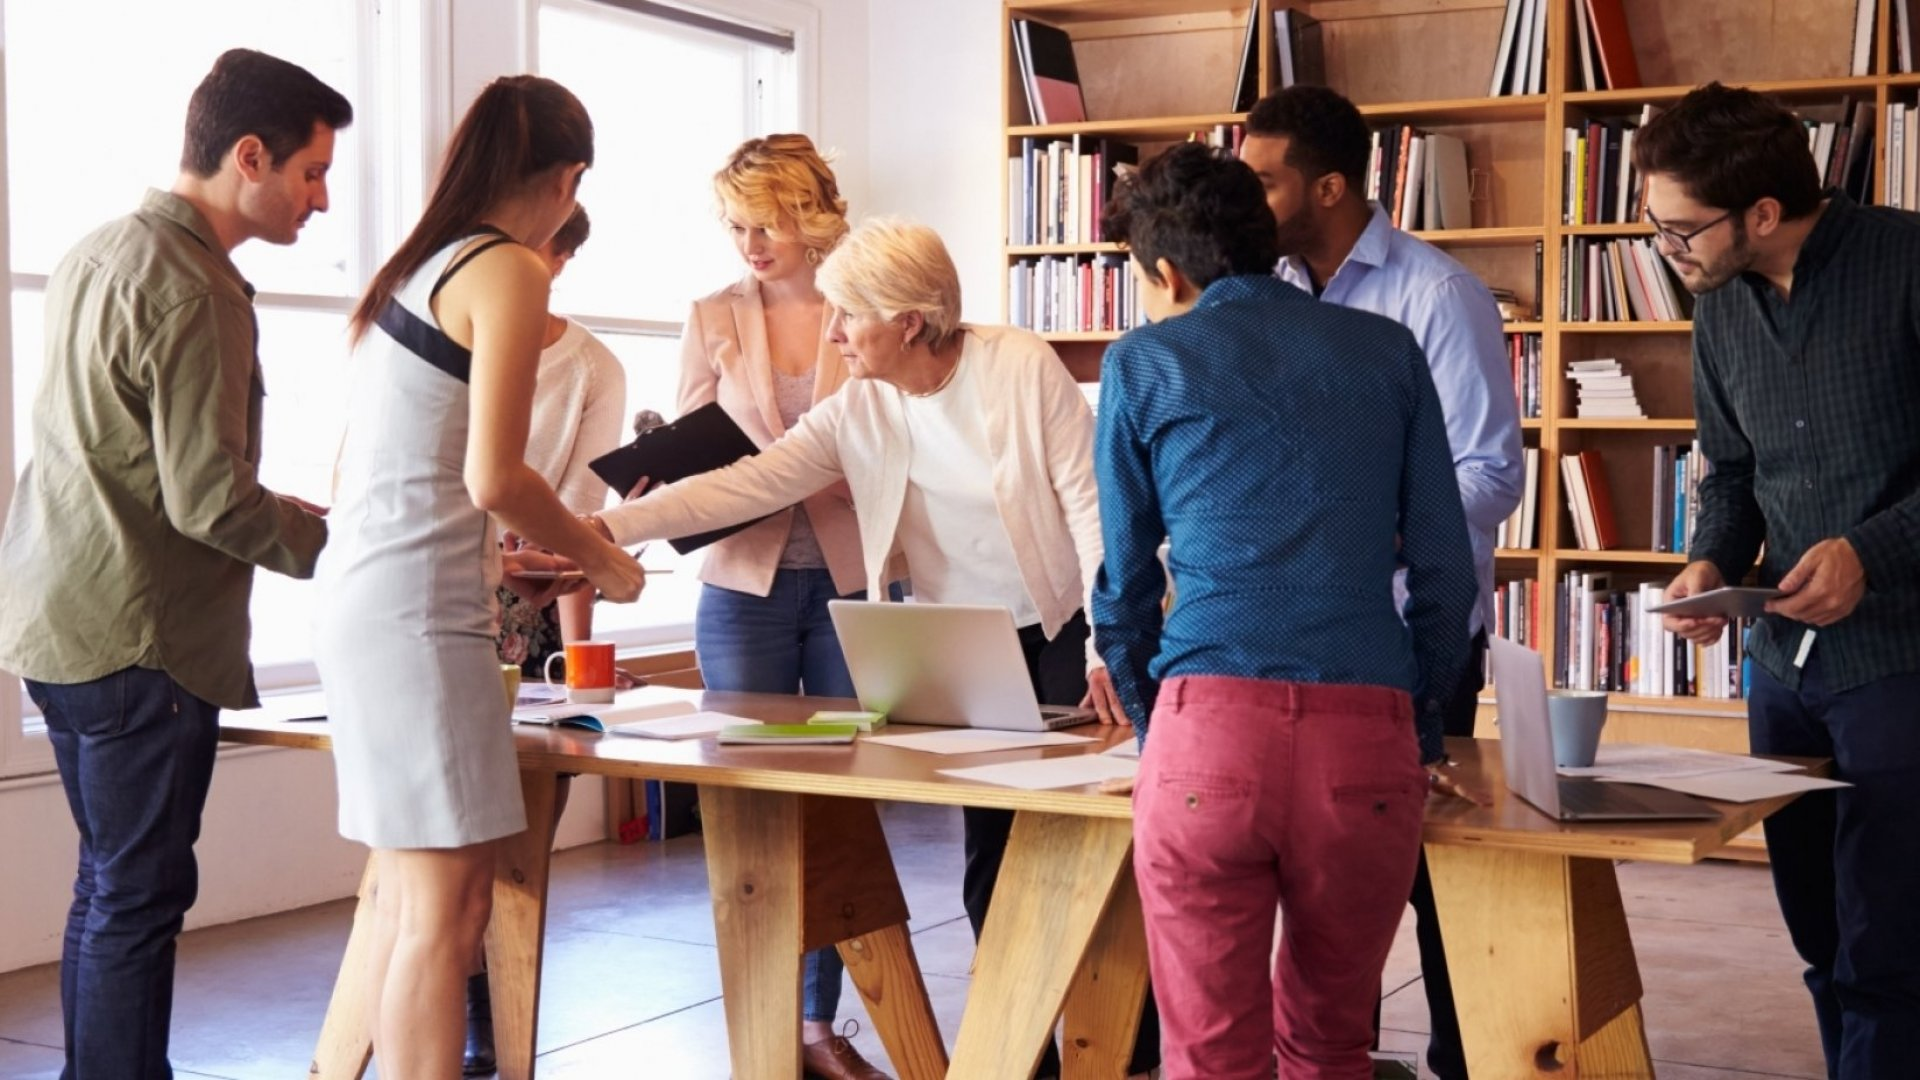 Struggling to End Your Daily Team Meeting on Time? Try These 5 Simple Strategies